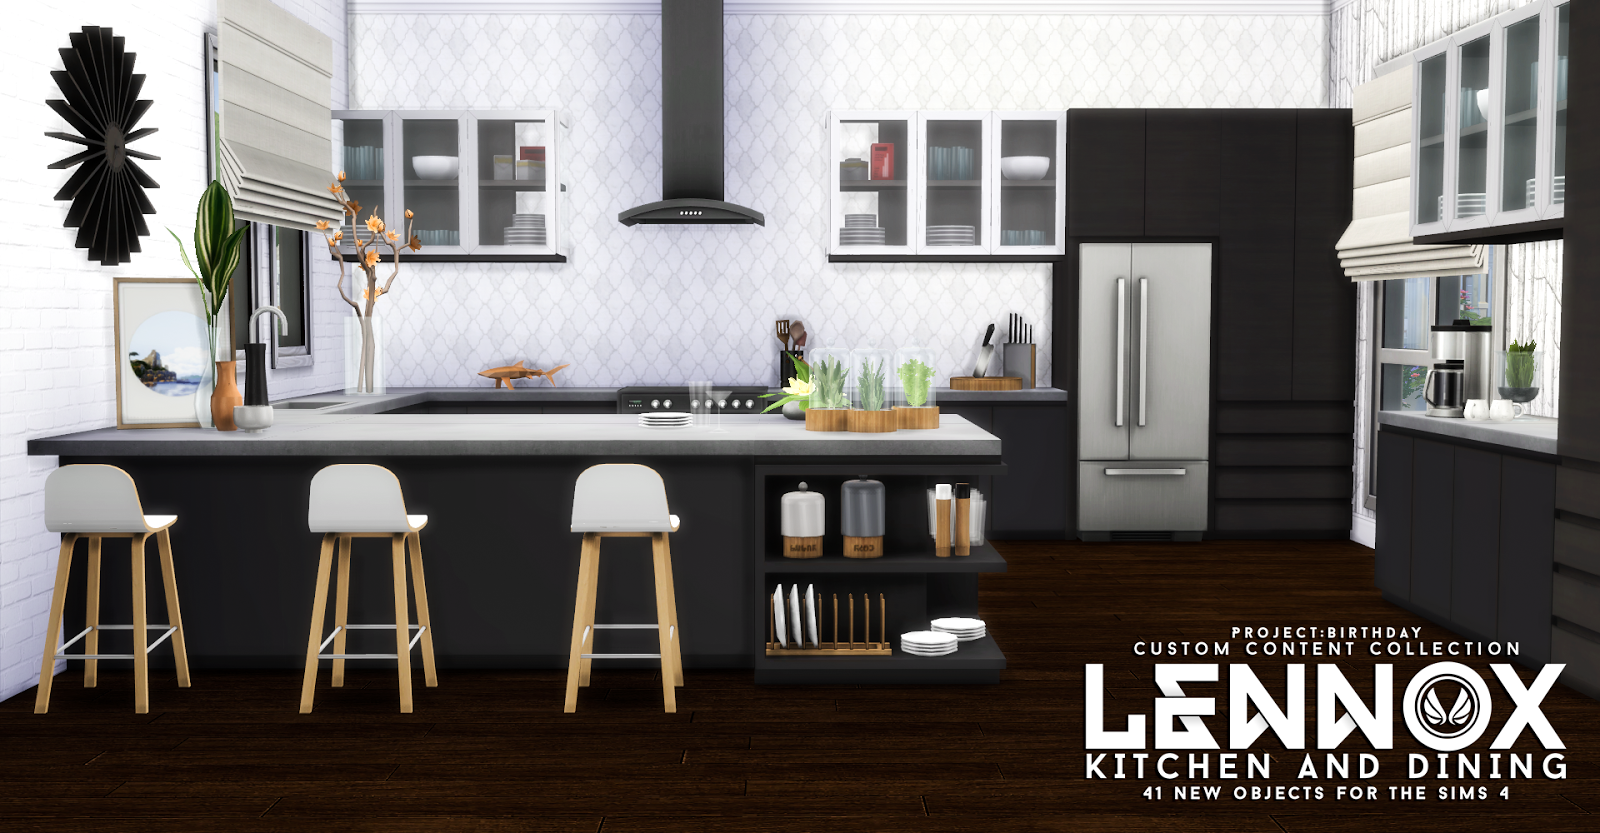 Simsational designs lennox kitchen and dining set for Sims 3 kitchen designs